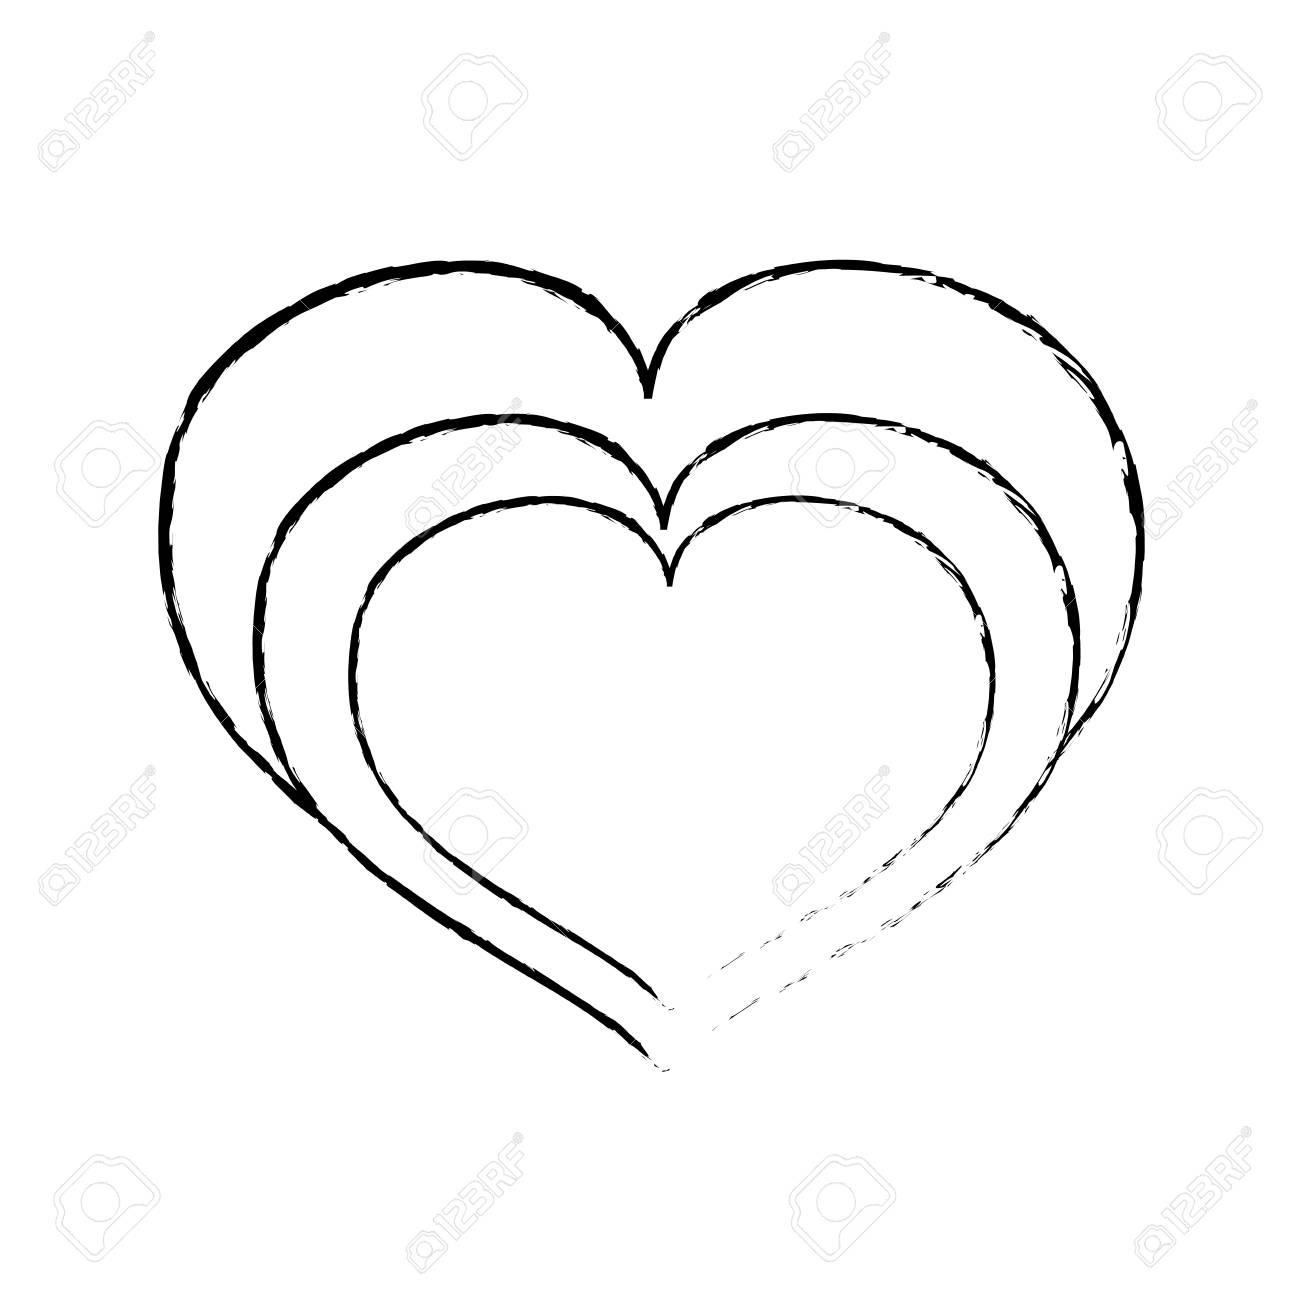 Grunge Heart Love Symbol Of Passion Royalty Free Cliparts Vectors